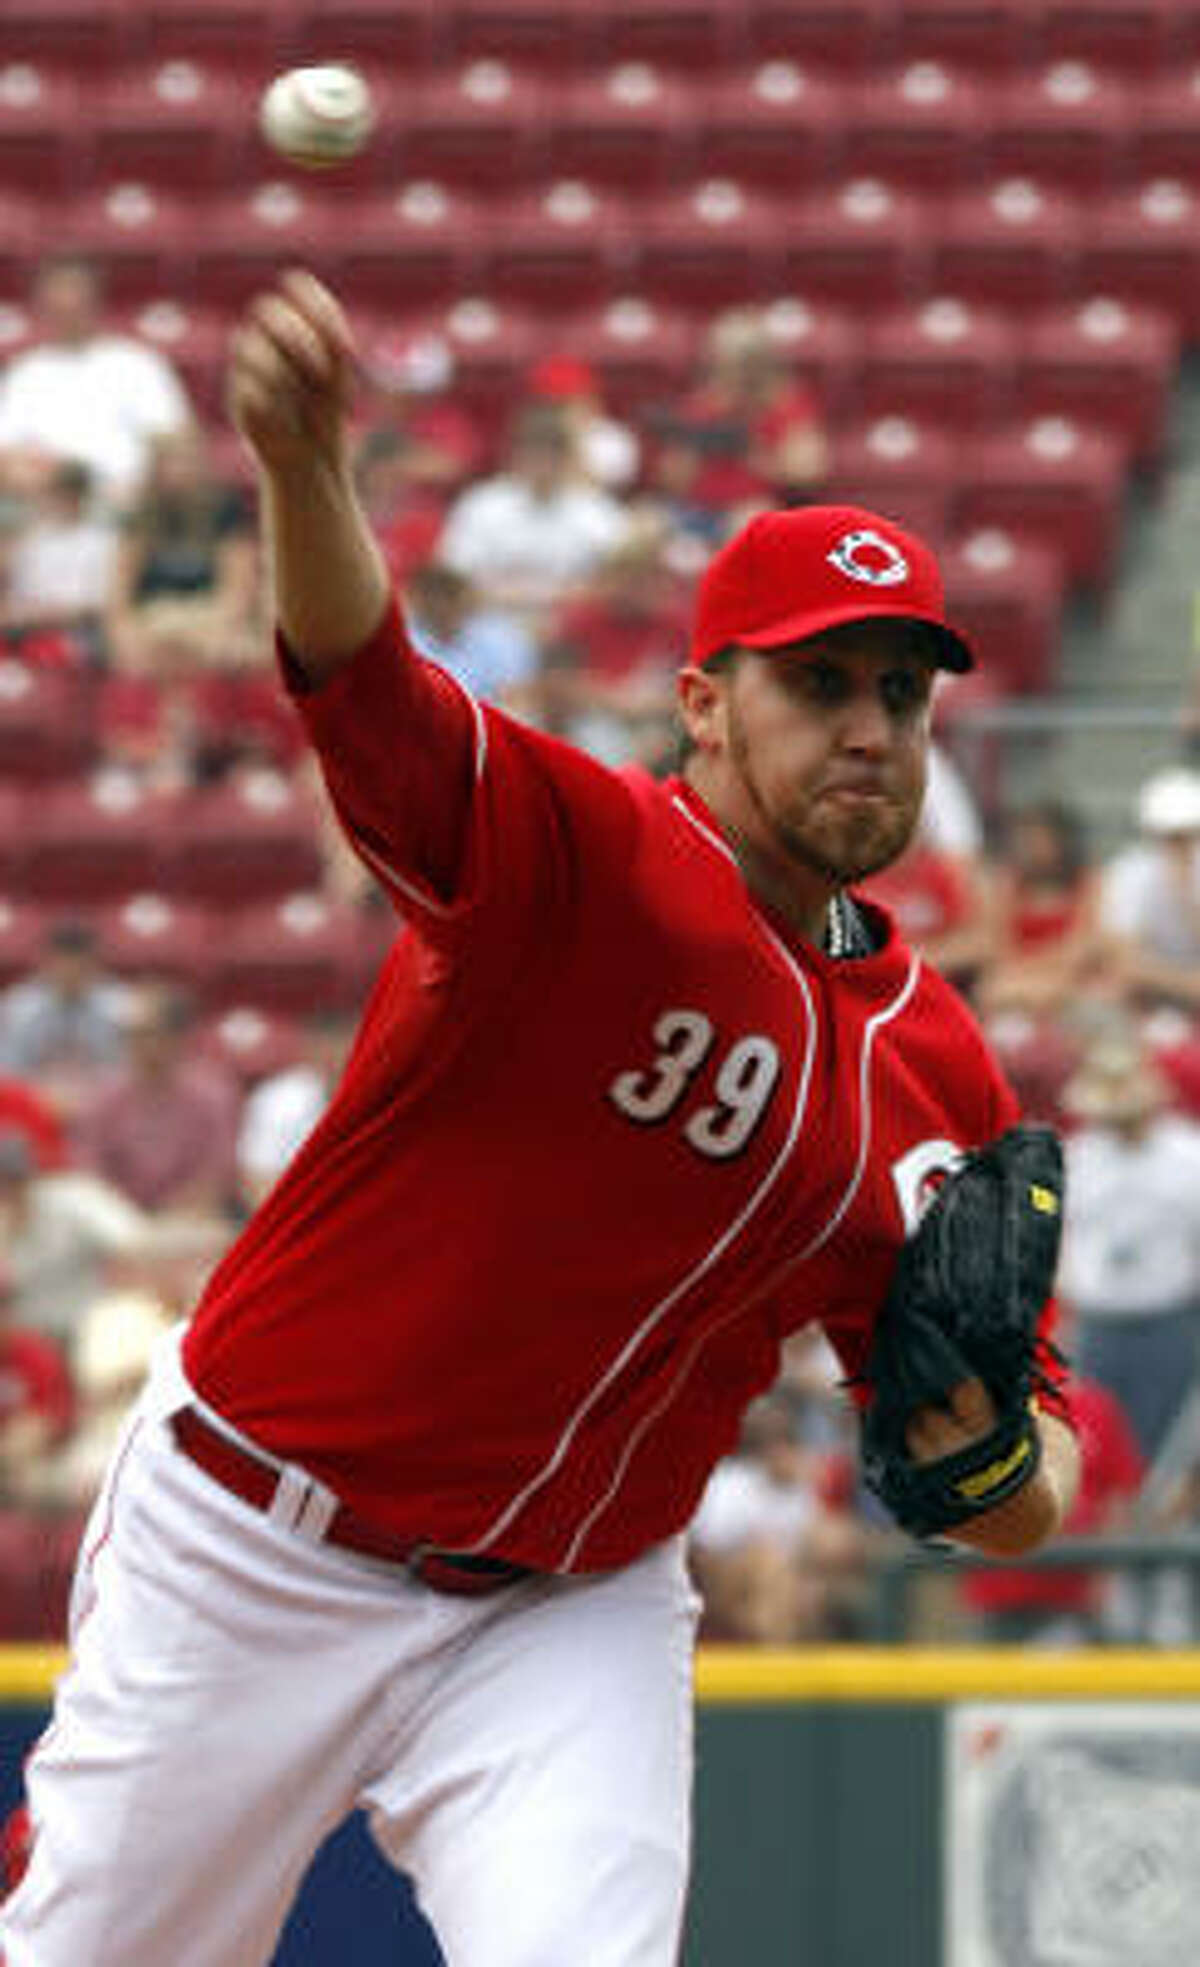 Aaron Harang pitched the first 4 2/3 innings and then came back after the two-hour rain delay.